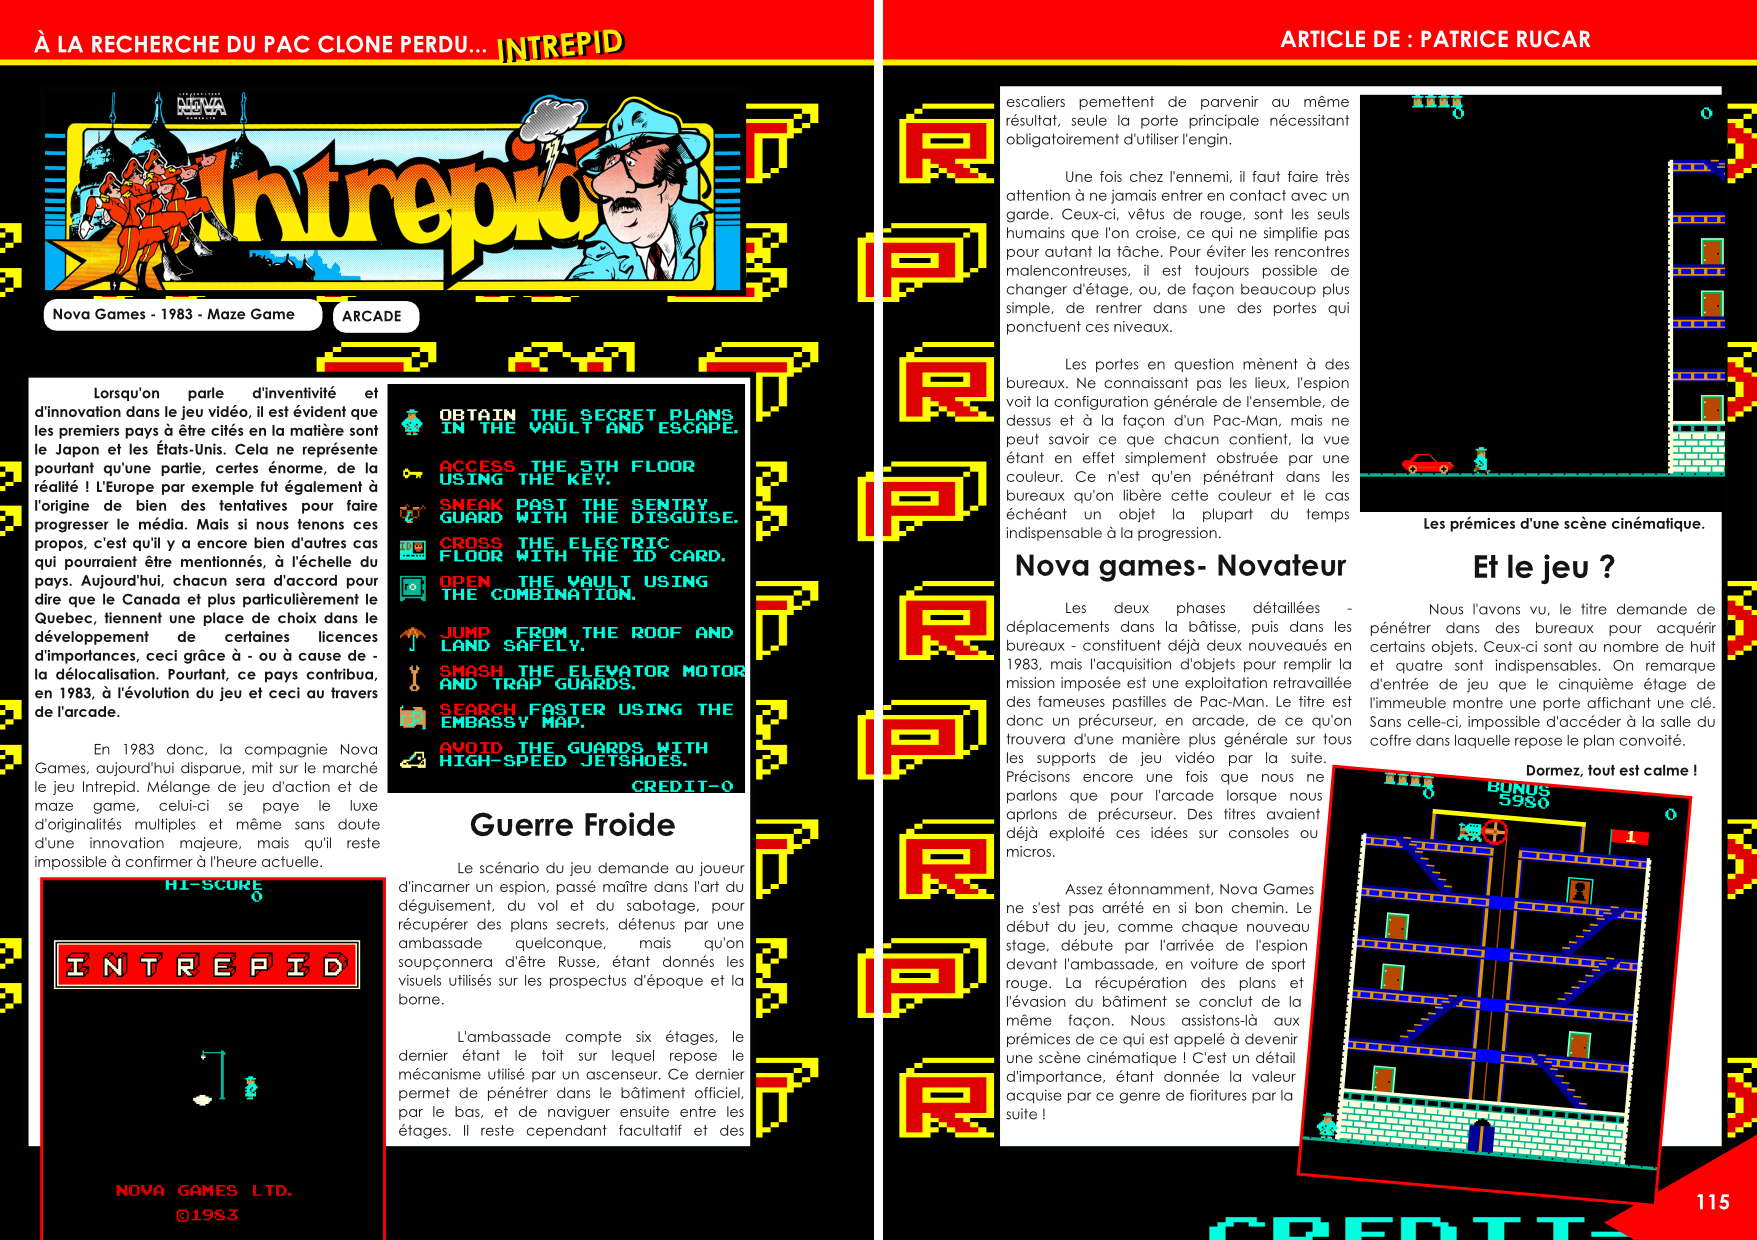 Intrepid sur Arcade de Nova Games article du magazine Côté Gamers